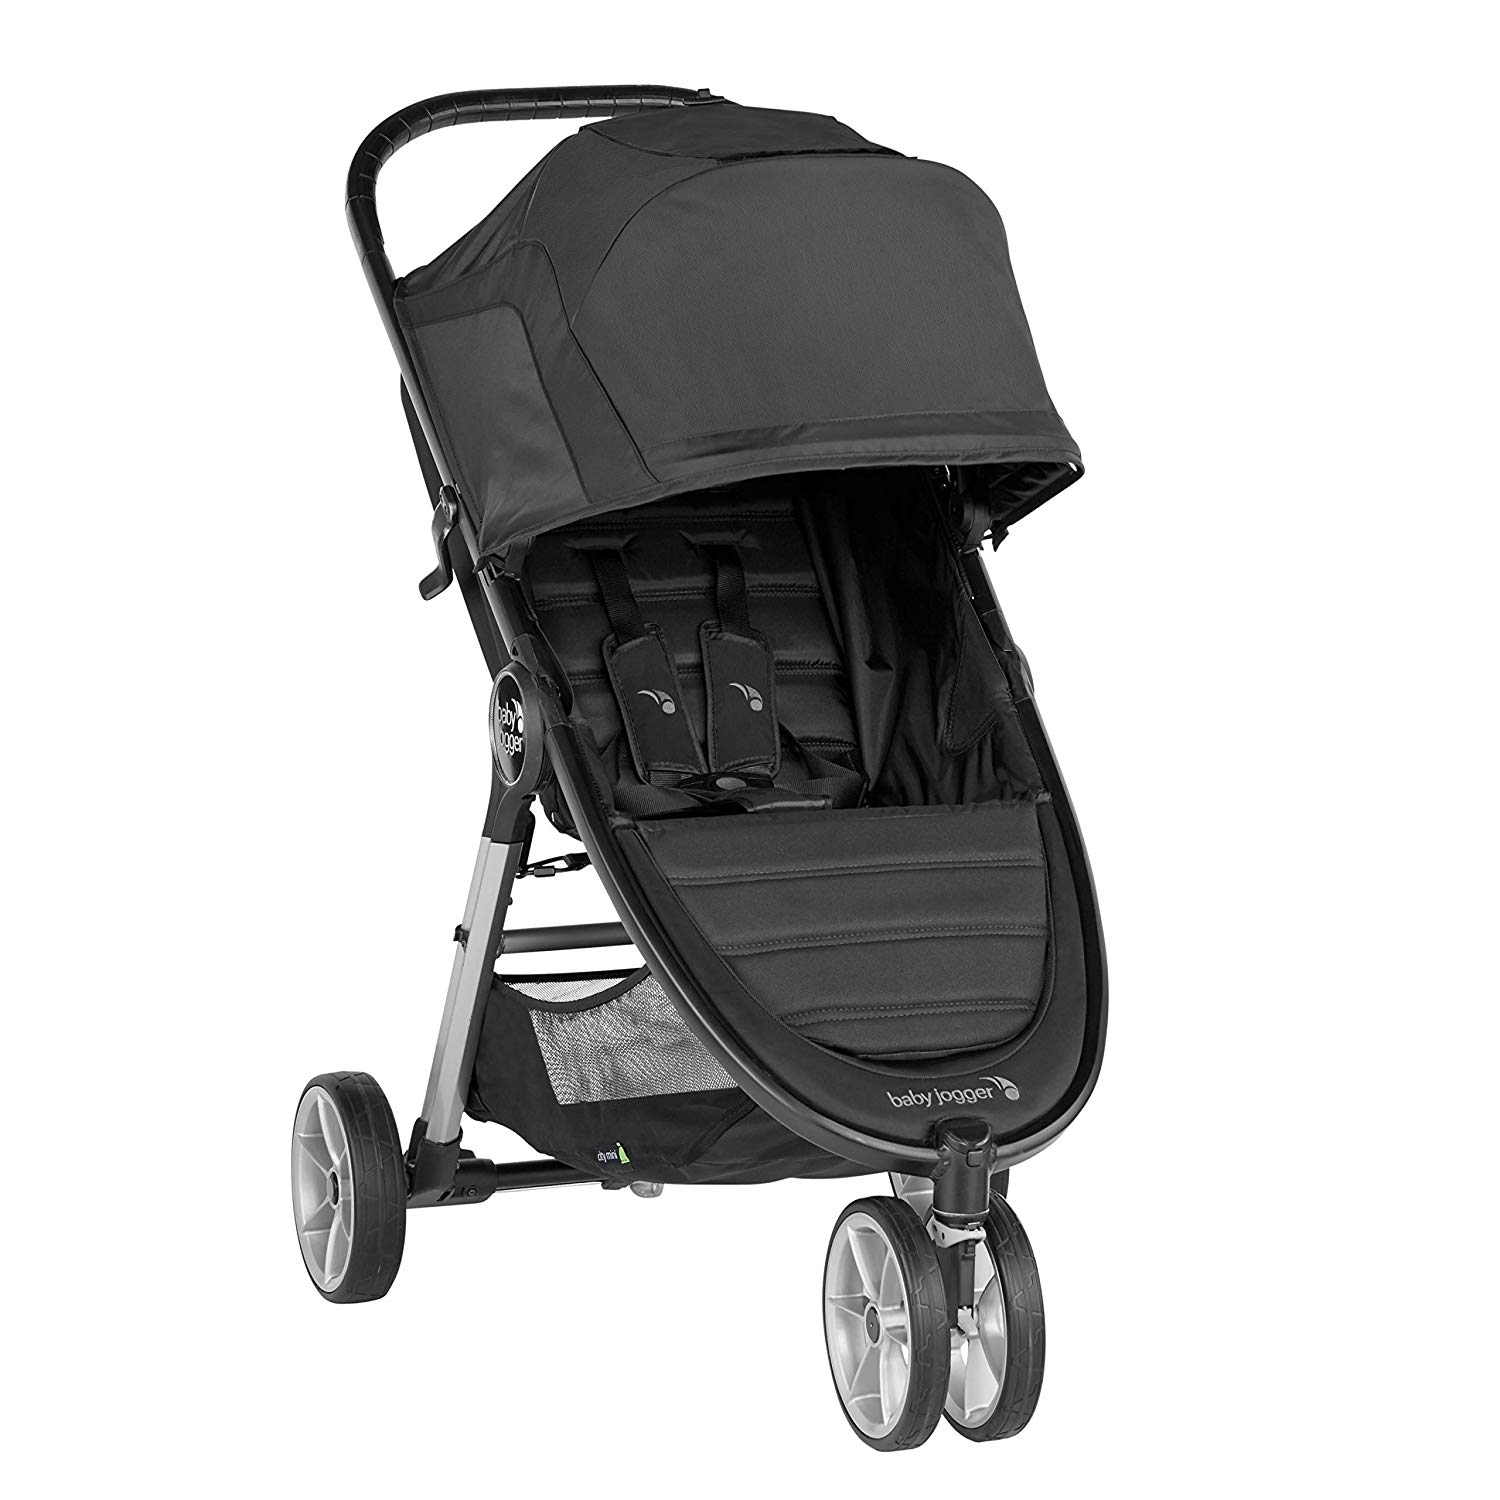 The Baby Jogger City Mini is a popular stroller